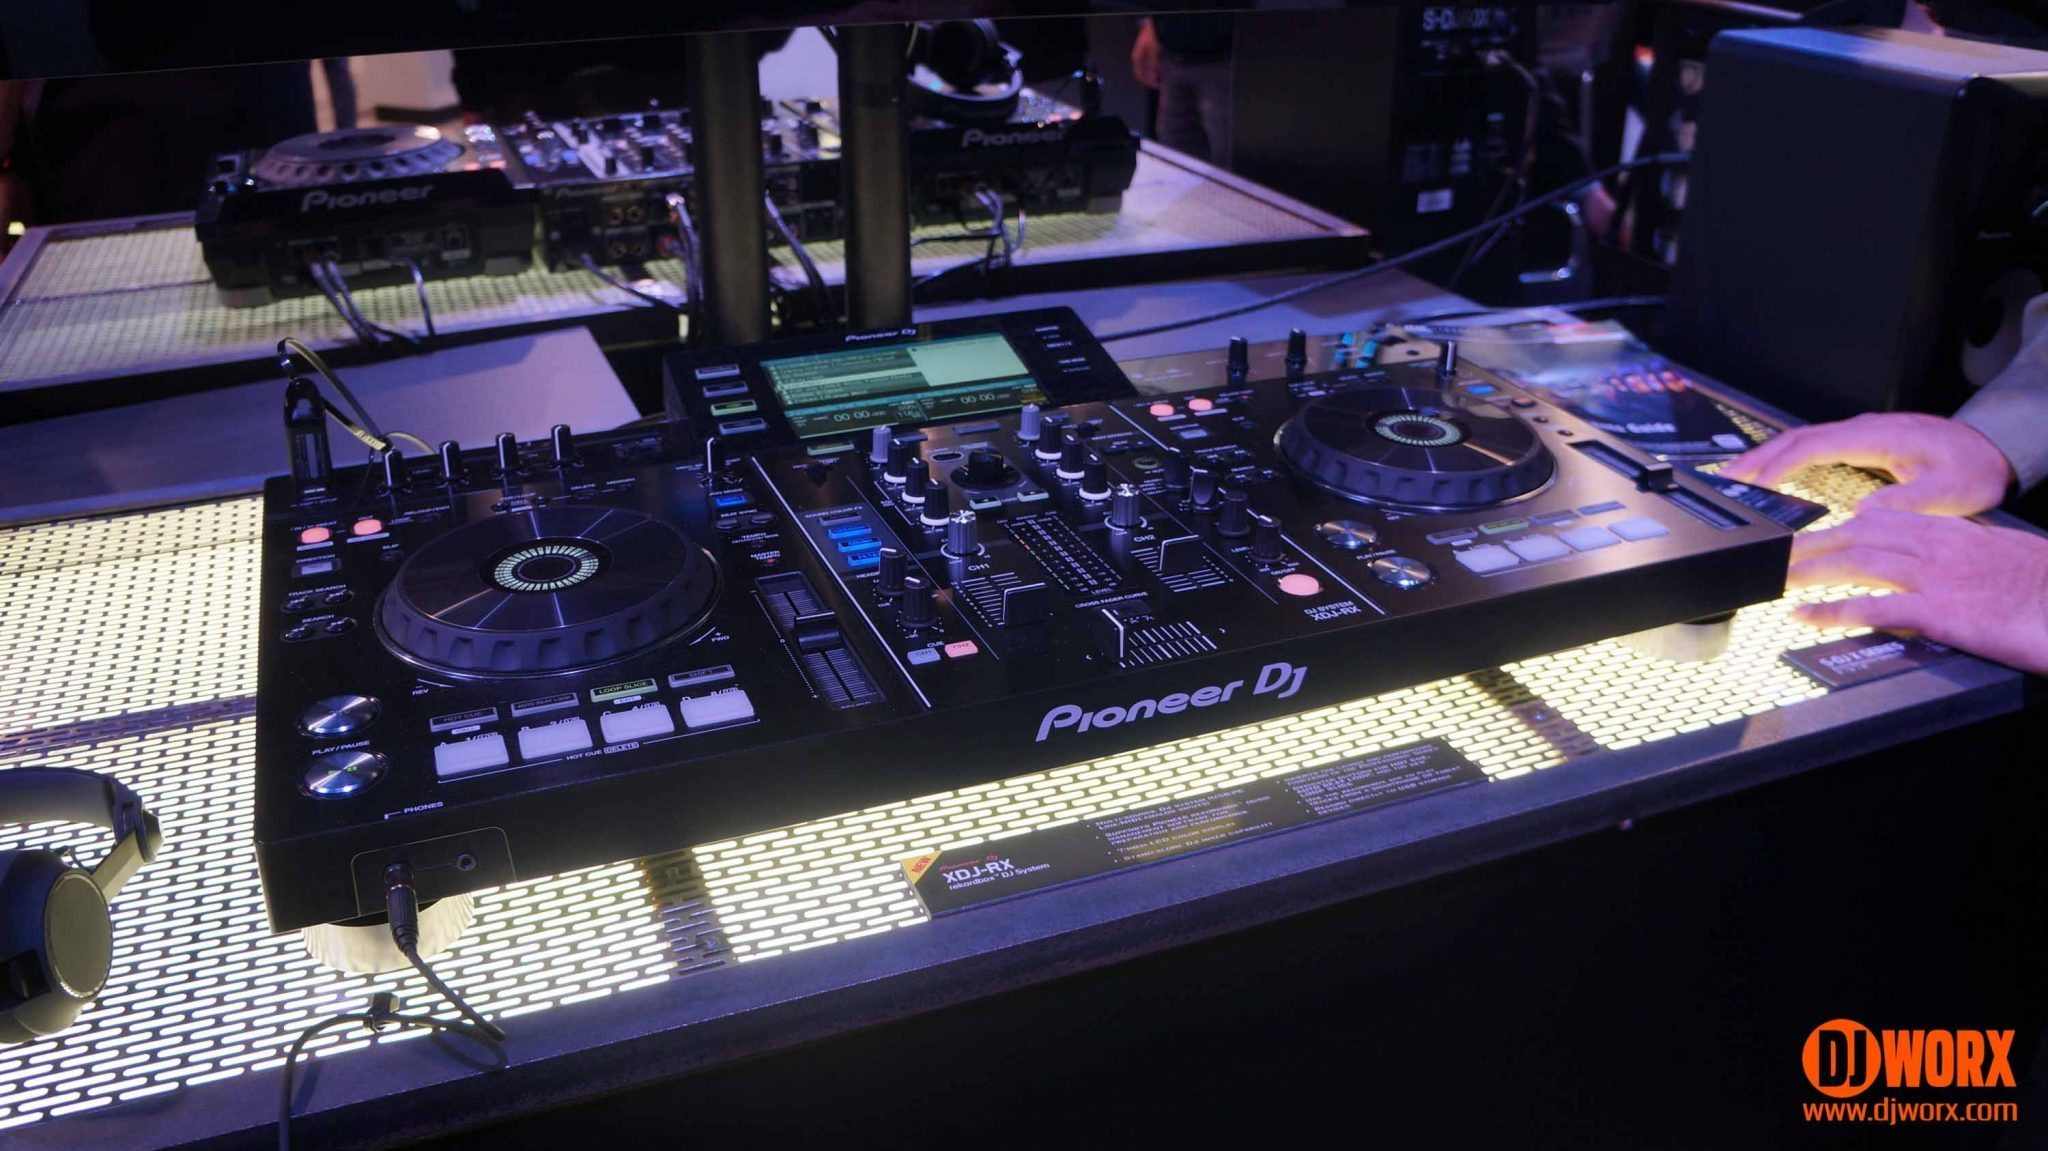 5cec82afbf7 NAMM 2015: Pioneer XDJ-RX and headphones | DJWORX